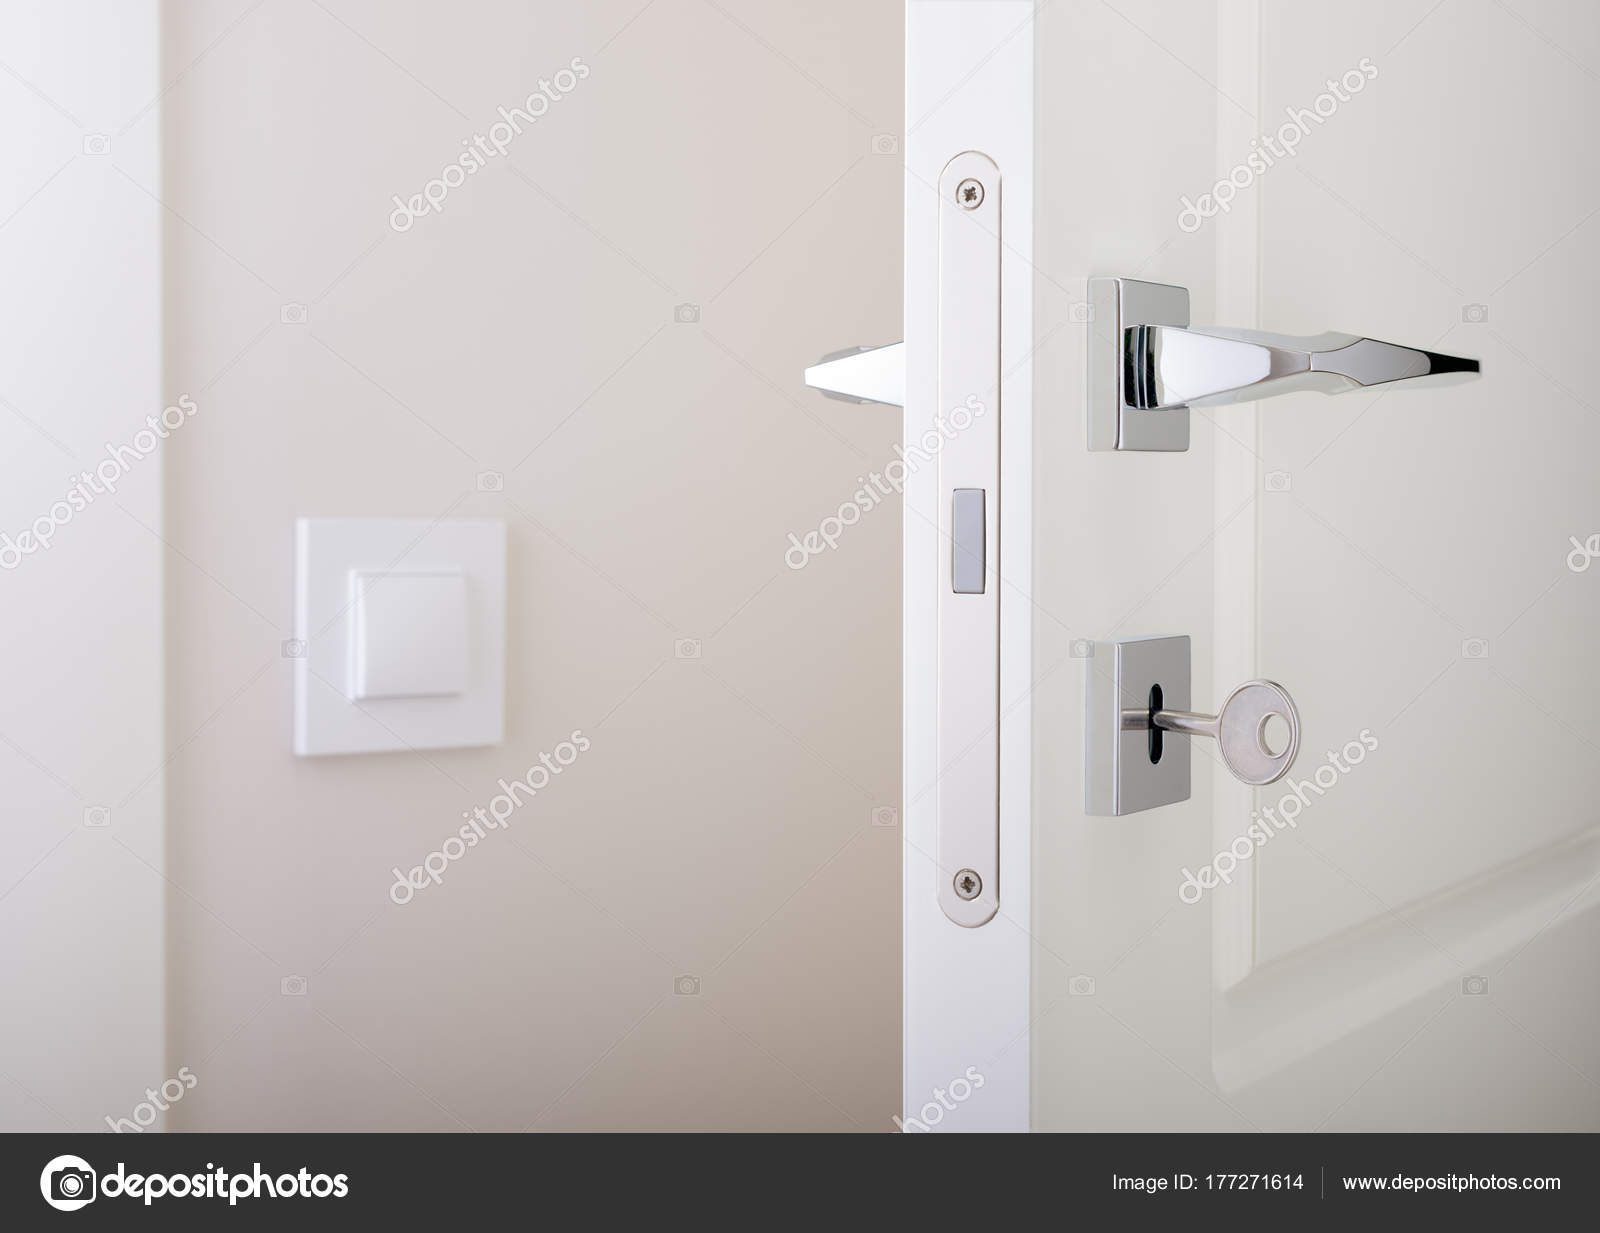 Closeup Of White Interior Doors Lock With Key And Chrome Door